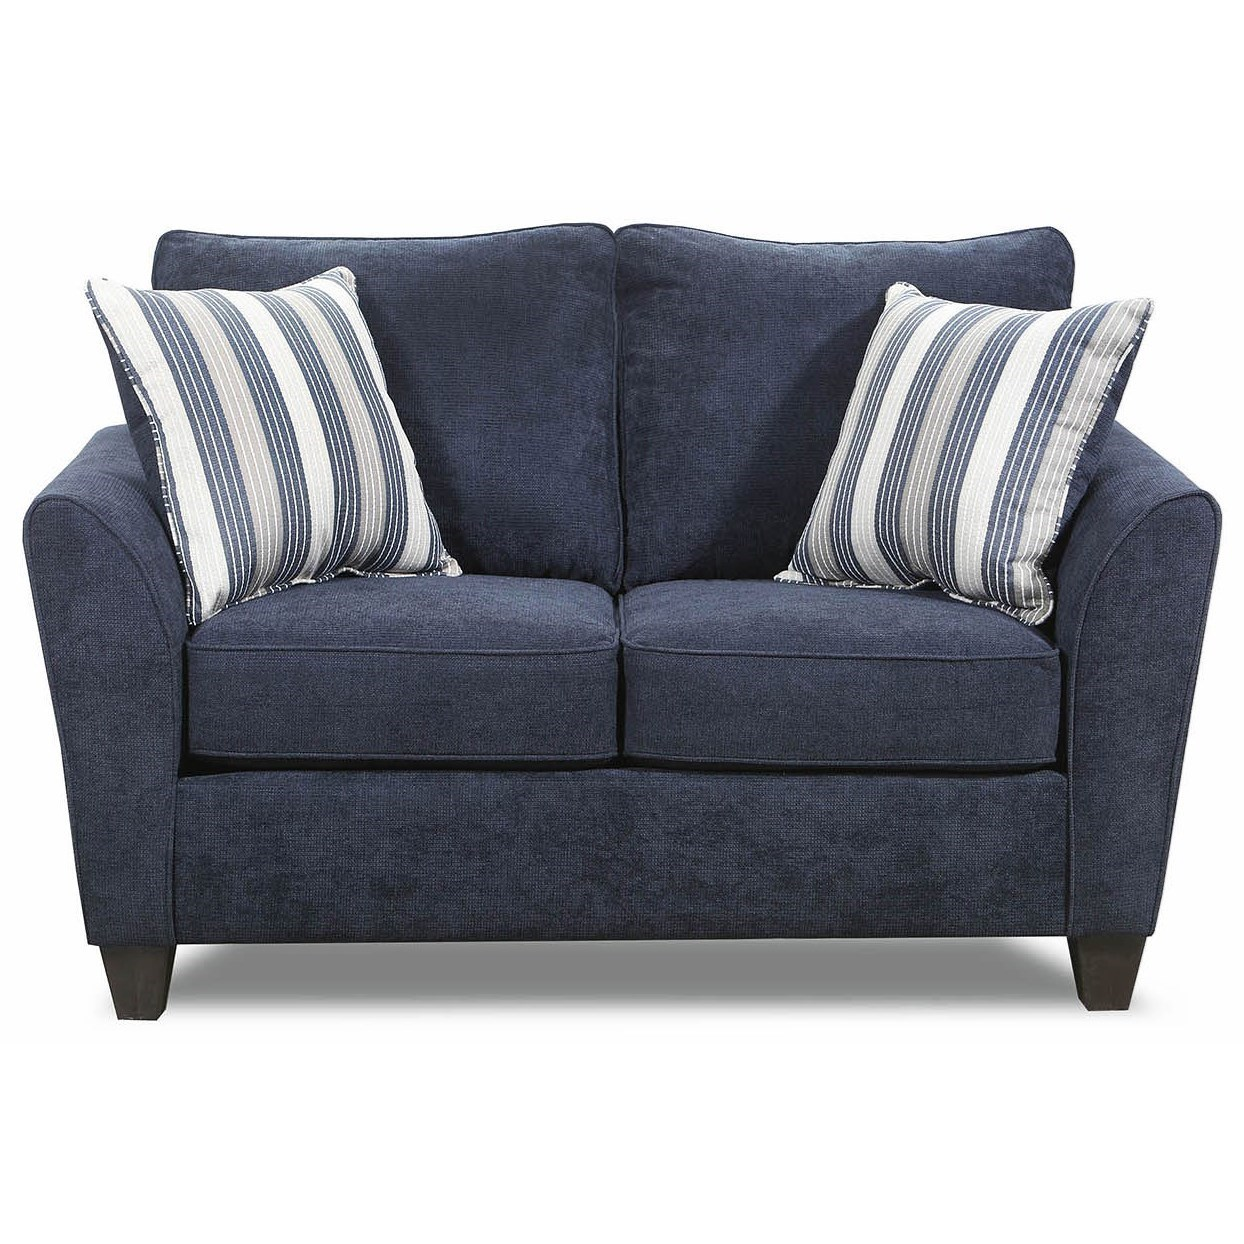 7081 Loveseat by Lane at Powell's Furniture and Mattress